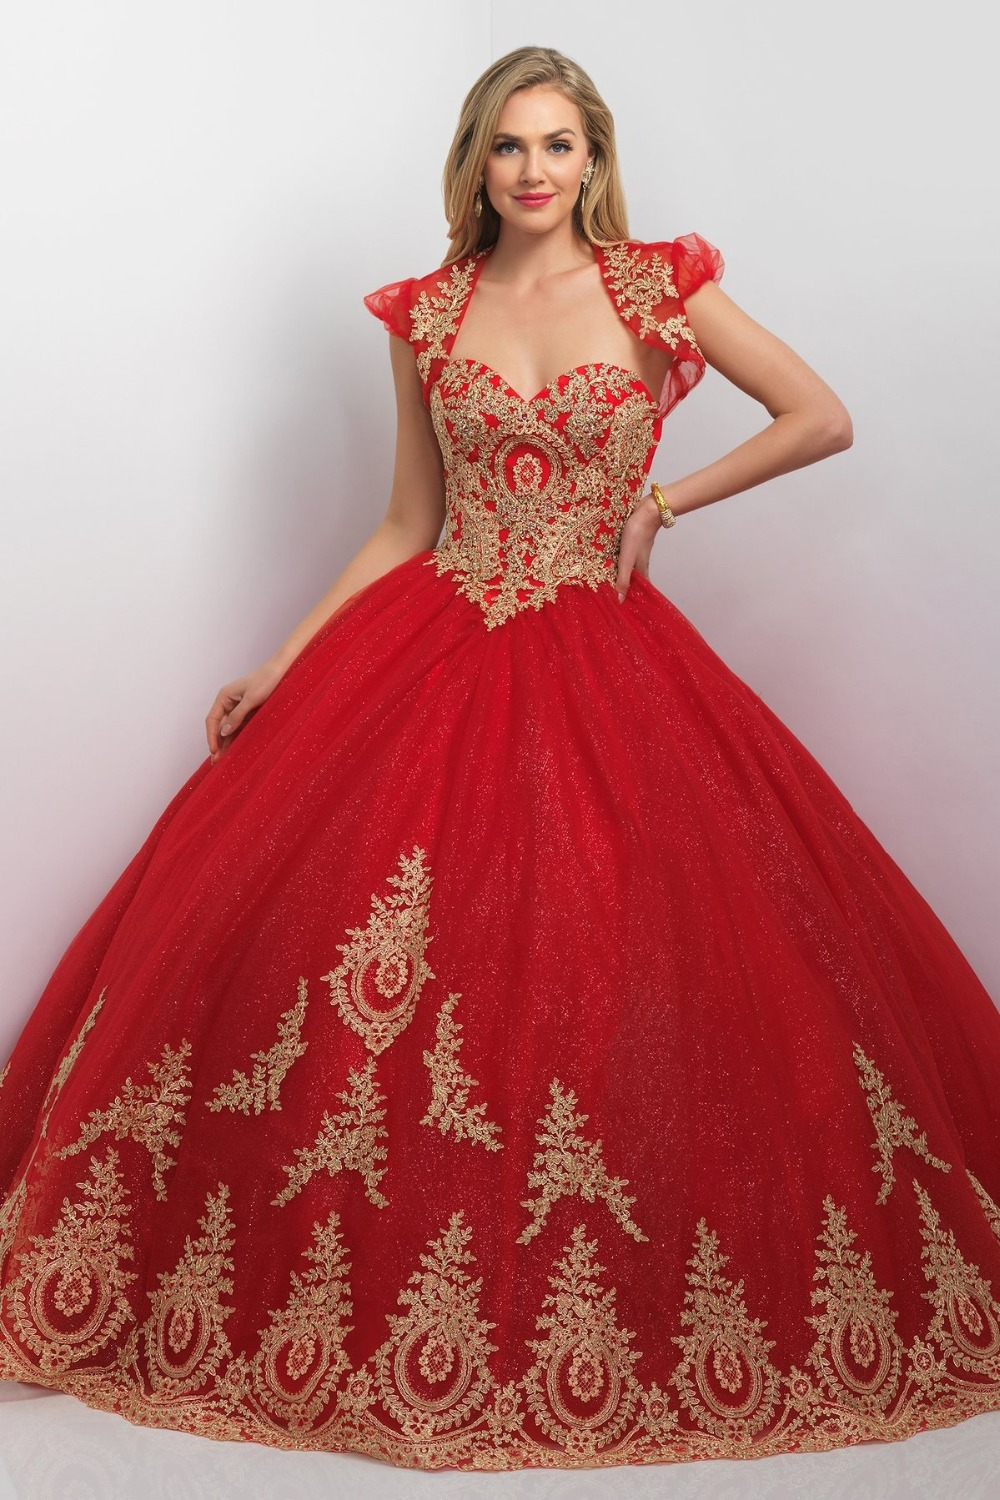 Bridal gowns with color red wedding dress White wedding gown with red roses on the dress